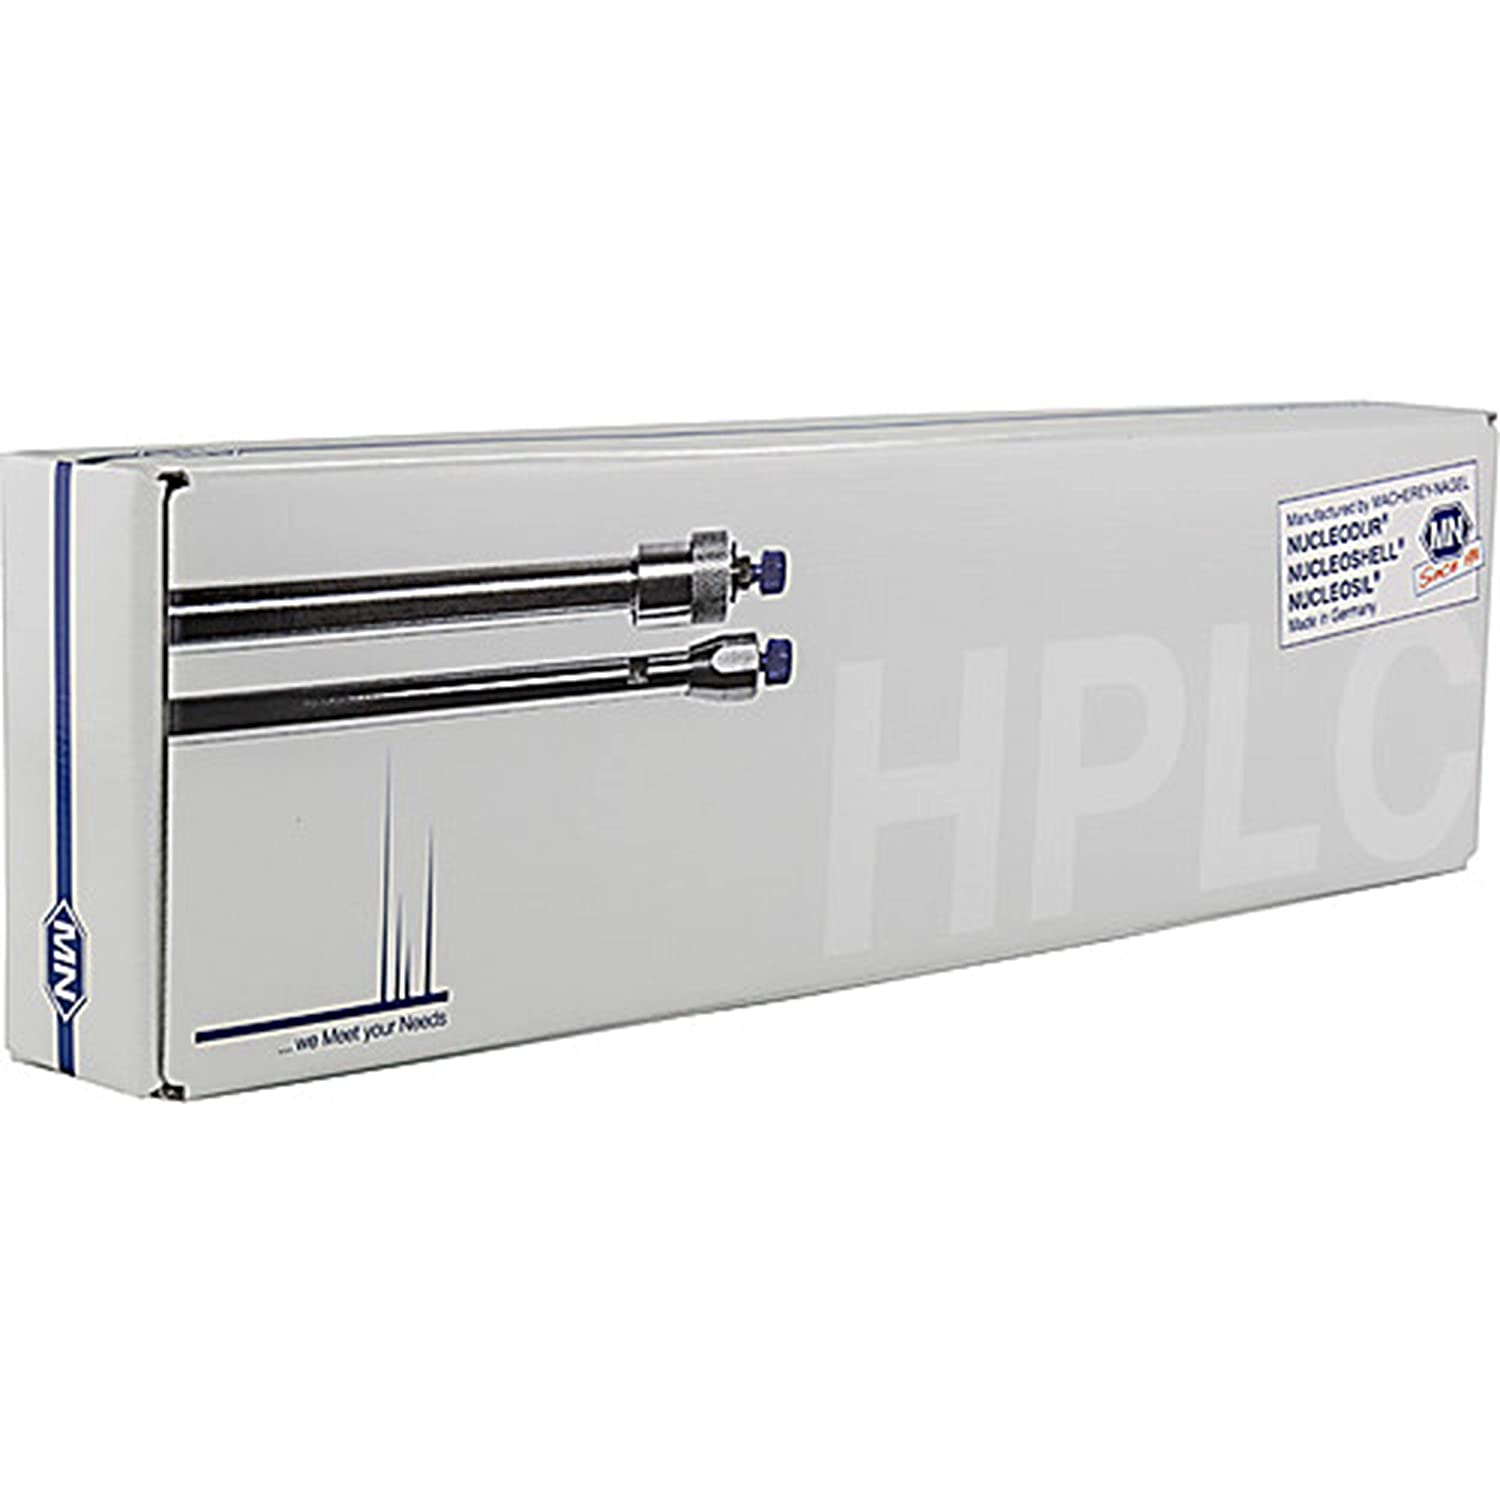 MACHEREY-NAGEL 763257.46 NUCLEOSHELL RP 18plus HPLC Column, Analytical, 5µm, 250 mm Length, 4.6 mm ID, L1 USP